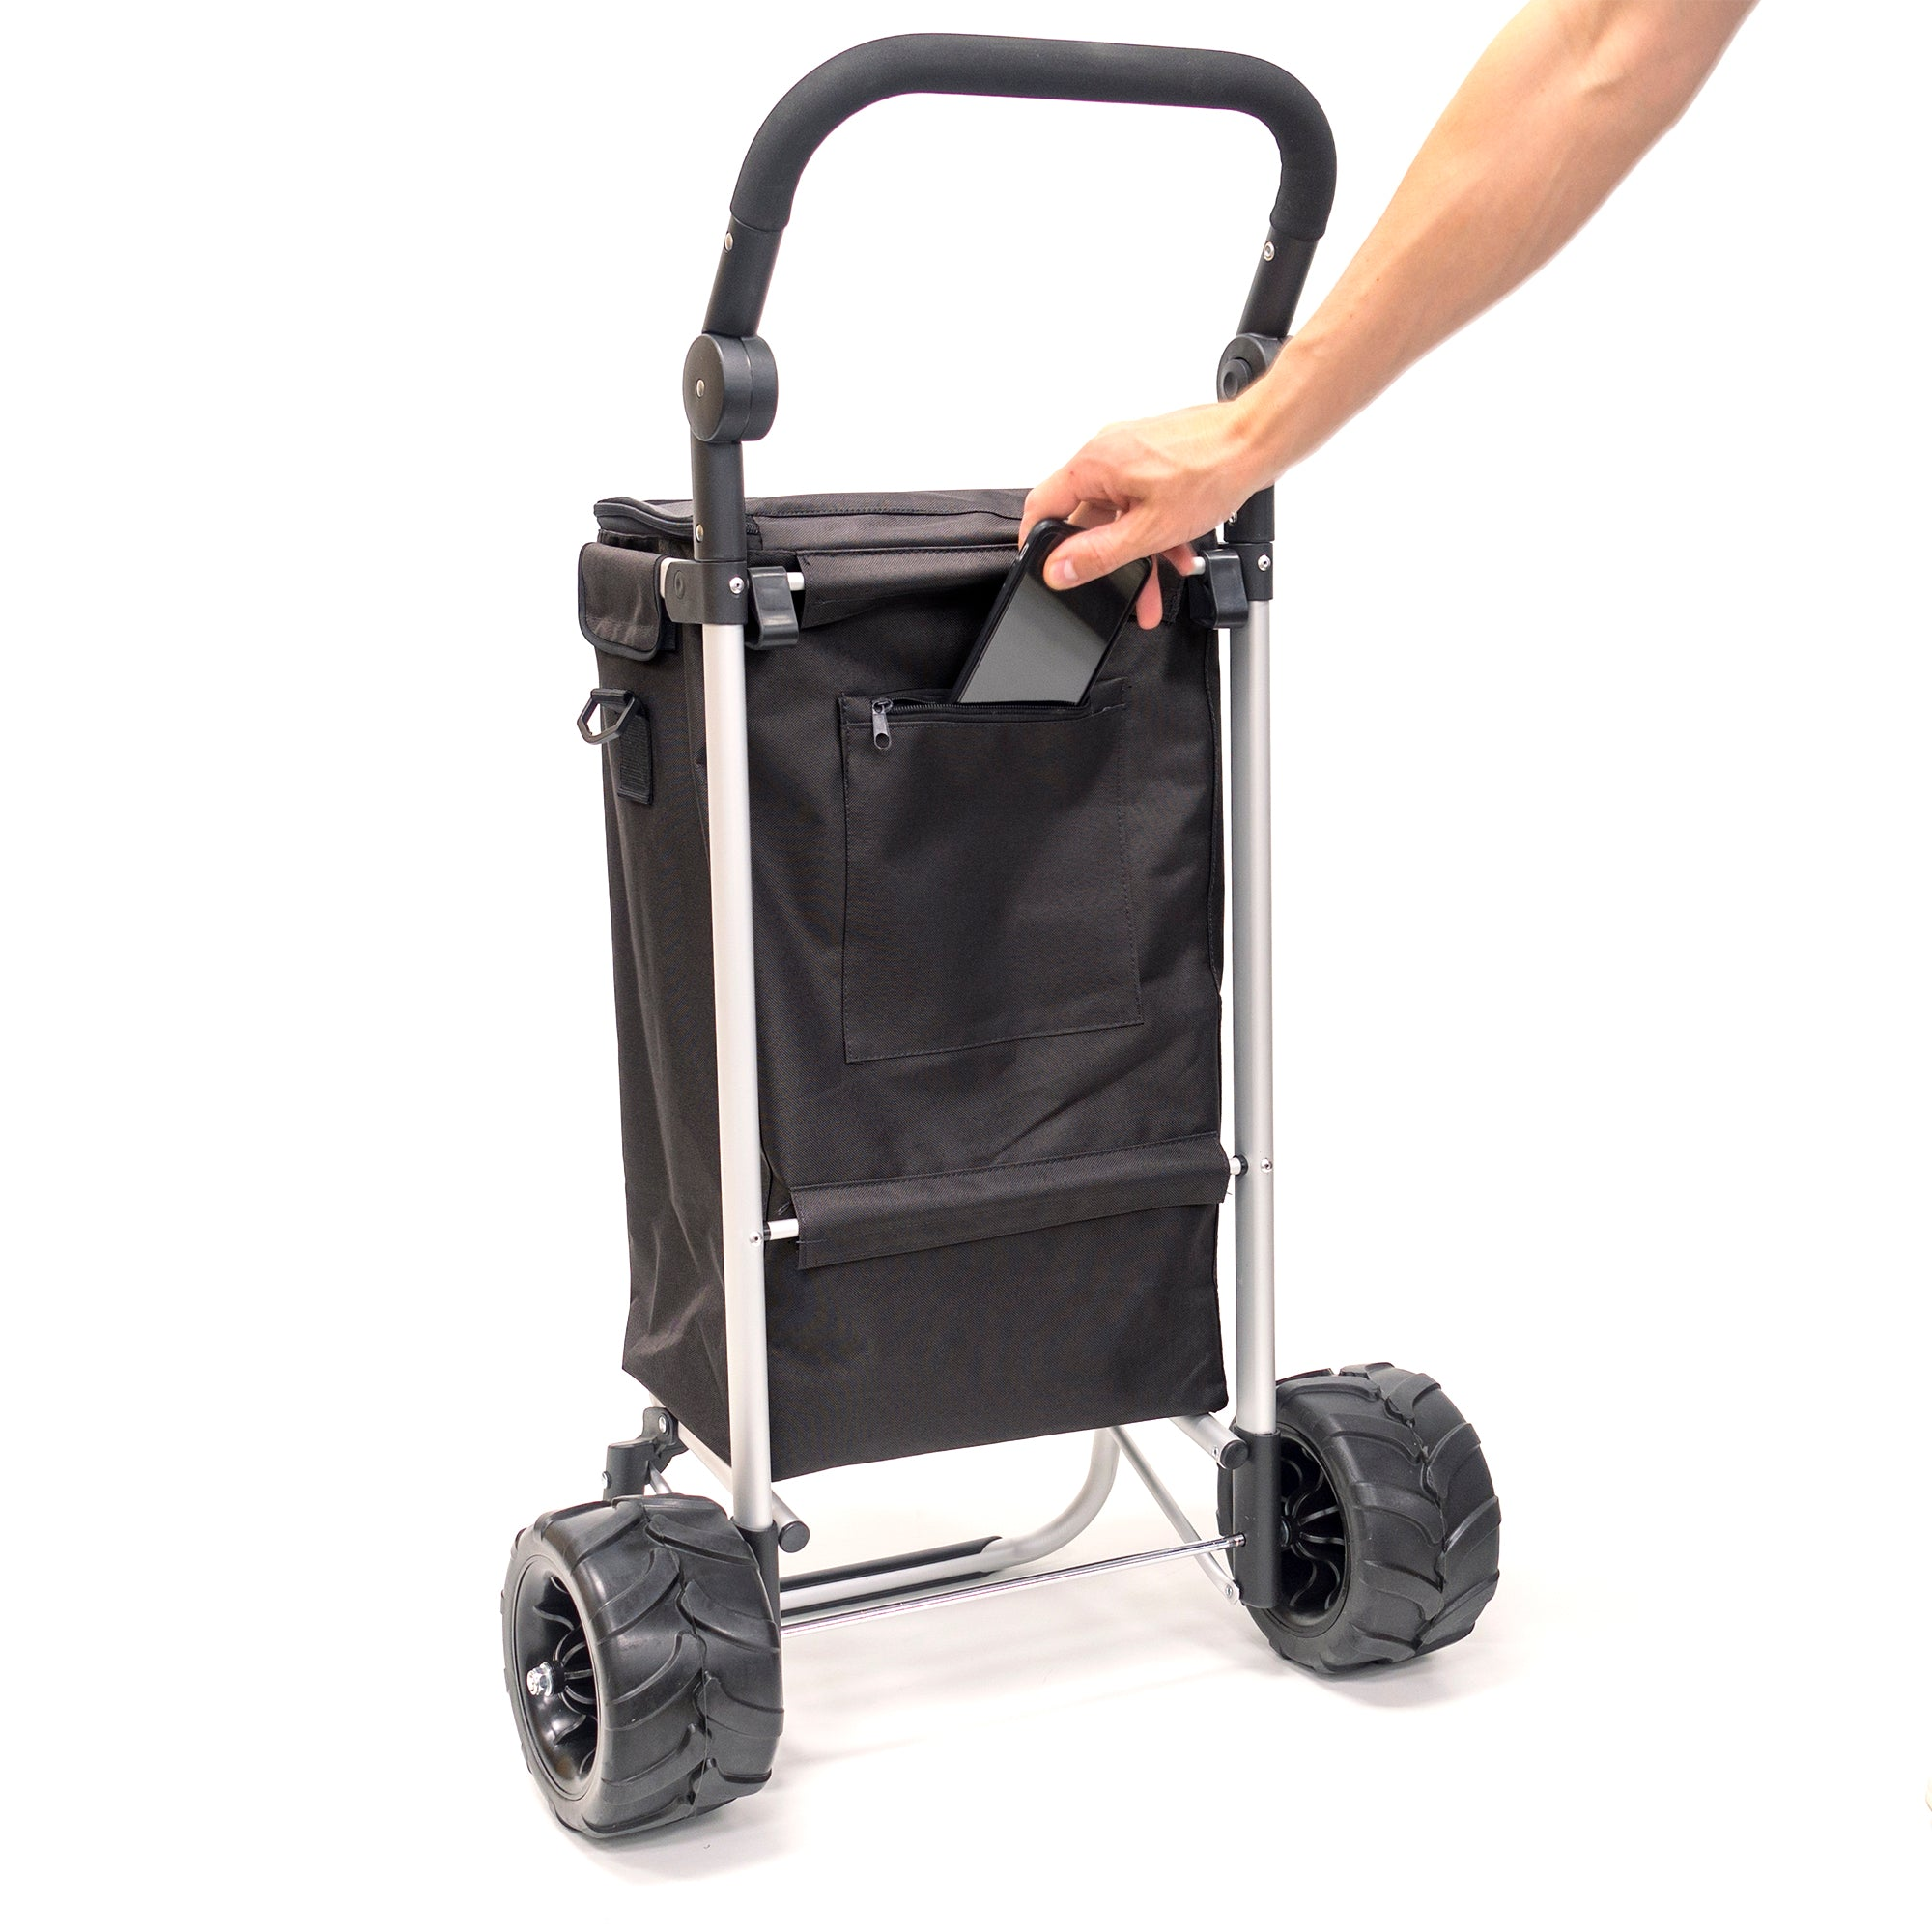 All-Terrain Folding Aluminum Trolley with Zip Pocket 890300